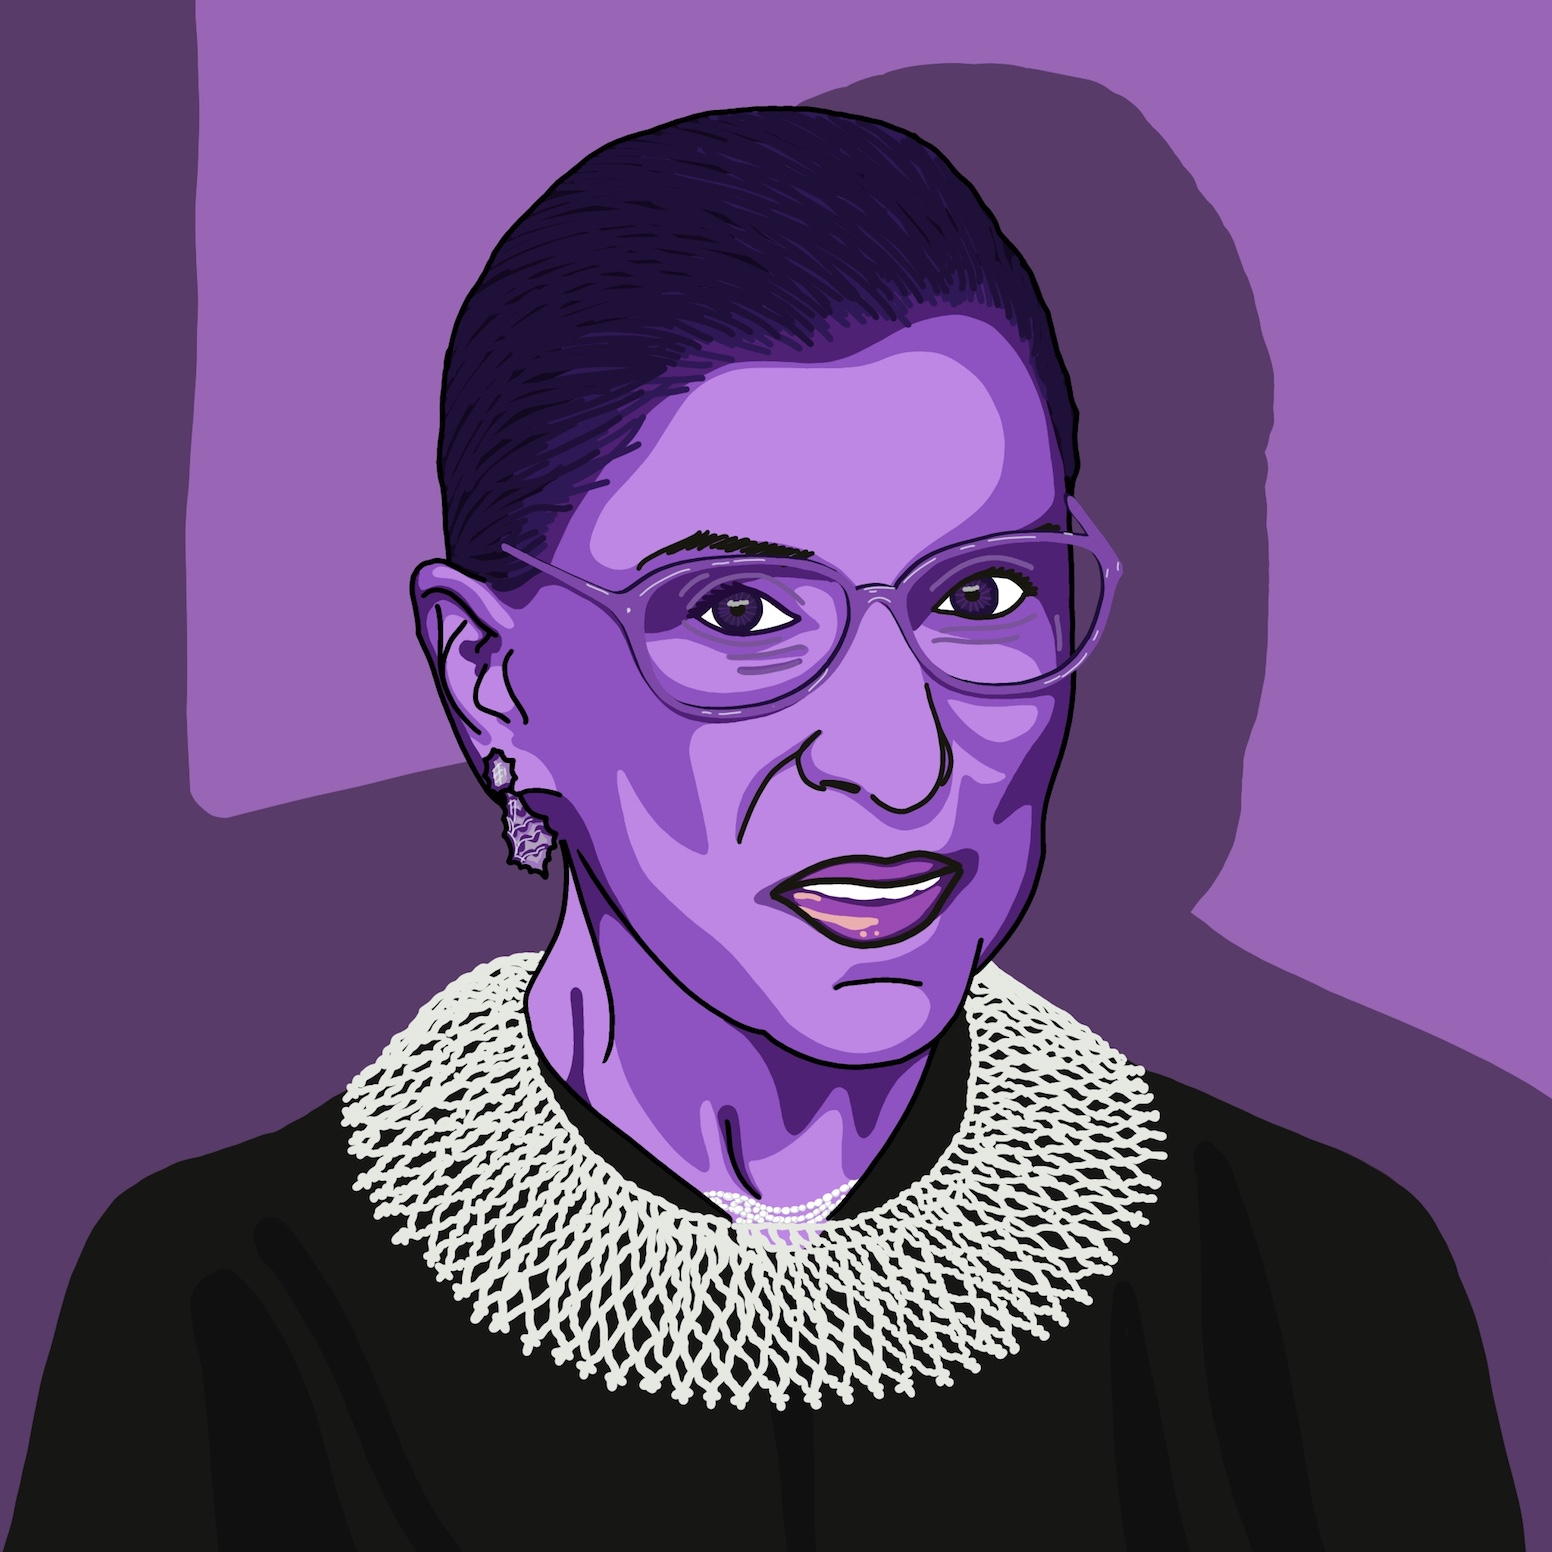 Ruth Bader Ginsberg⁣ ⁣ RBG is the second woman to have been appointed to the Supreme Court, and has served since 1993. Throughout her career, she's fought tirelessly and courageously to stand up for the rights of women, the LGBTQ community and many other marginalised groups.   She's famously won cases to improve women's access to reproductive healthcare, pregnancy, and equal pay, as well playing a huge part in the successful ruling to allow same-sex marriage in all 50 states in the US in 2015. ⁣ ⁣ She's such an impressive woman, who's spent her life fighting for equal rights, which is pretty much as inspirational as it gets.⁣